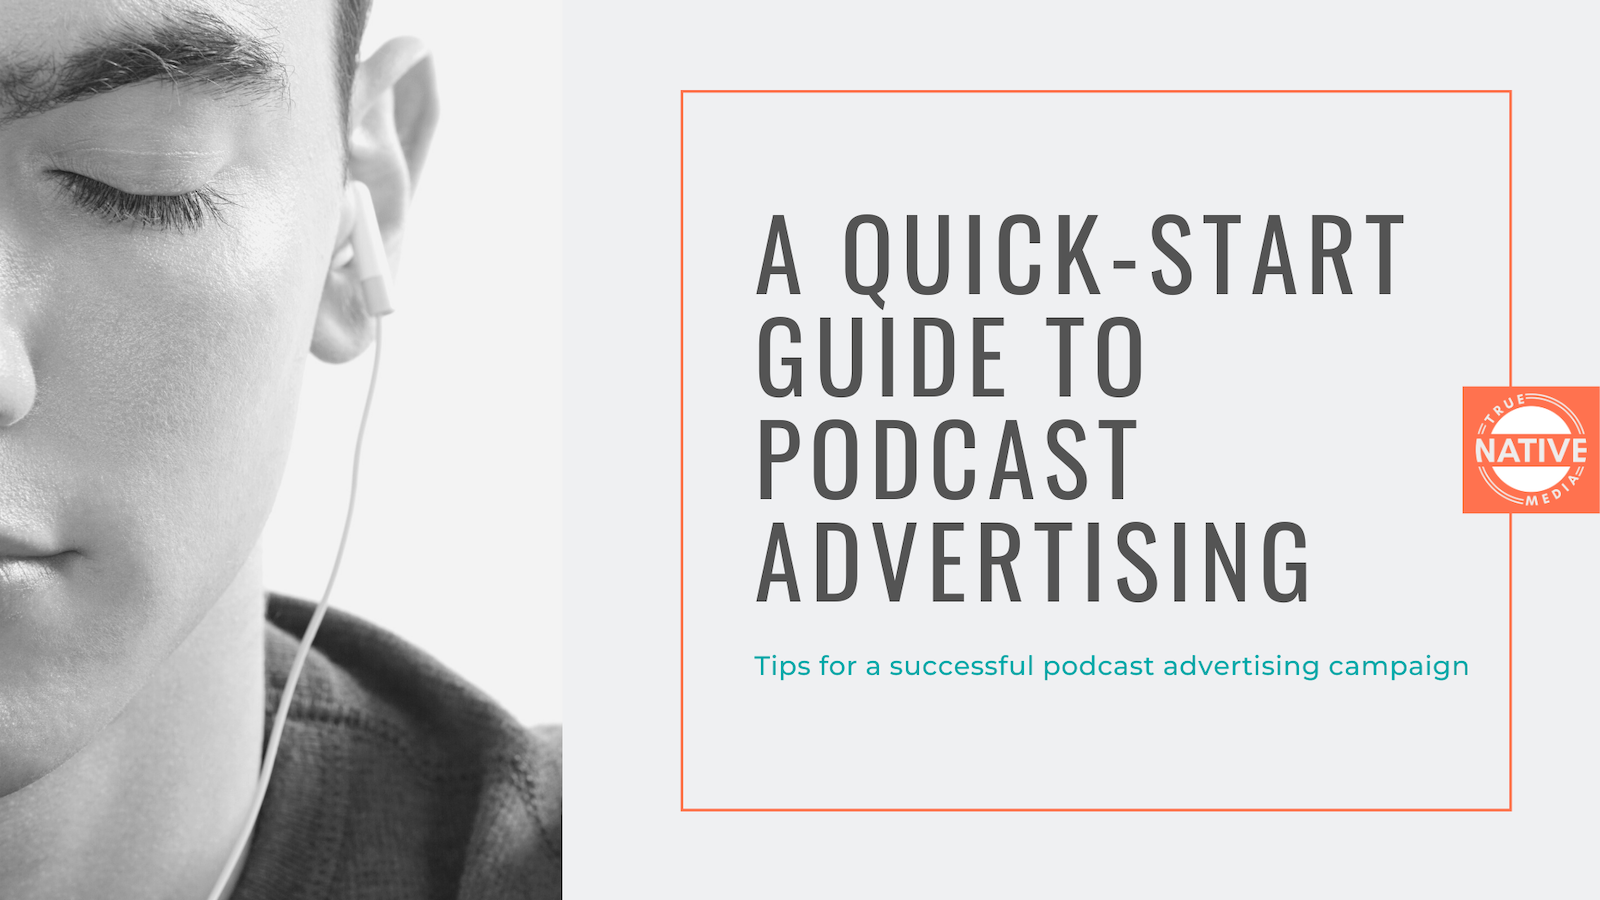 Quick-Start Guide to Podcast advertising Best Practices